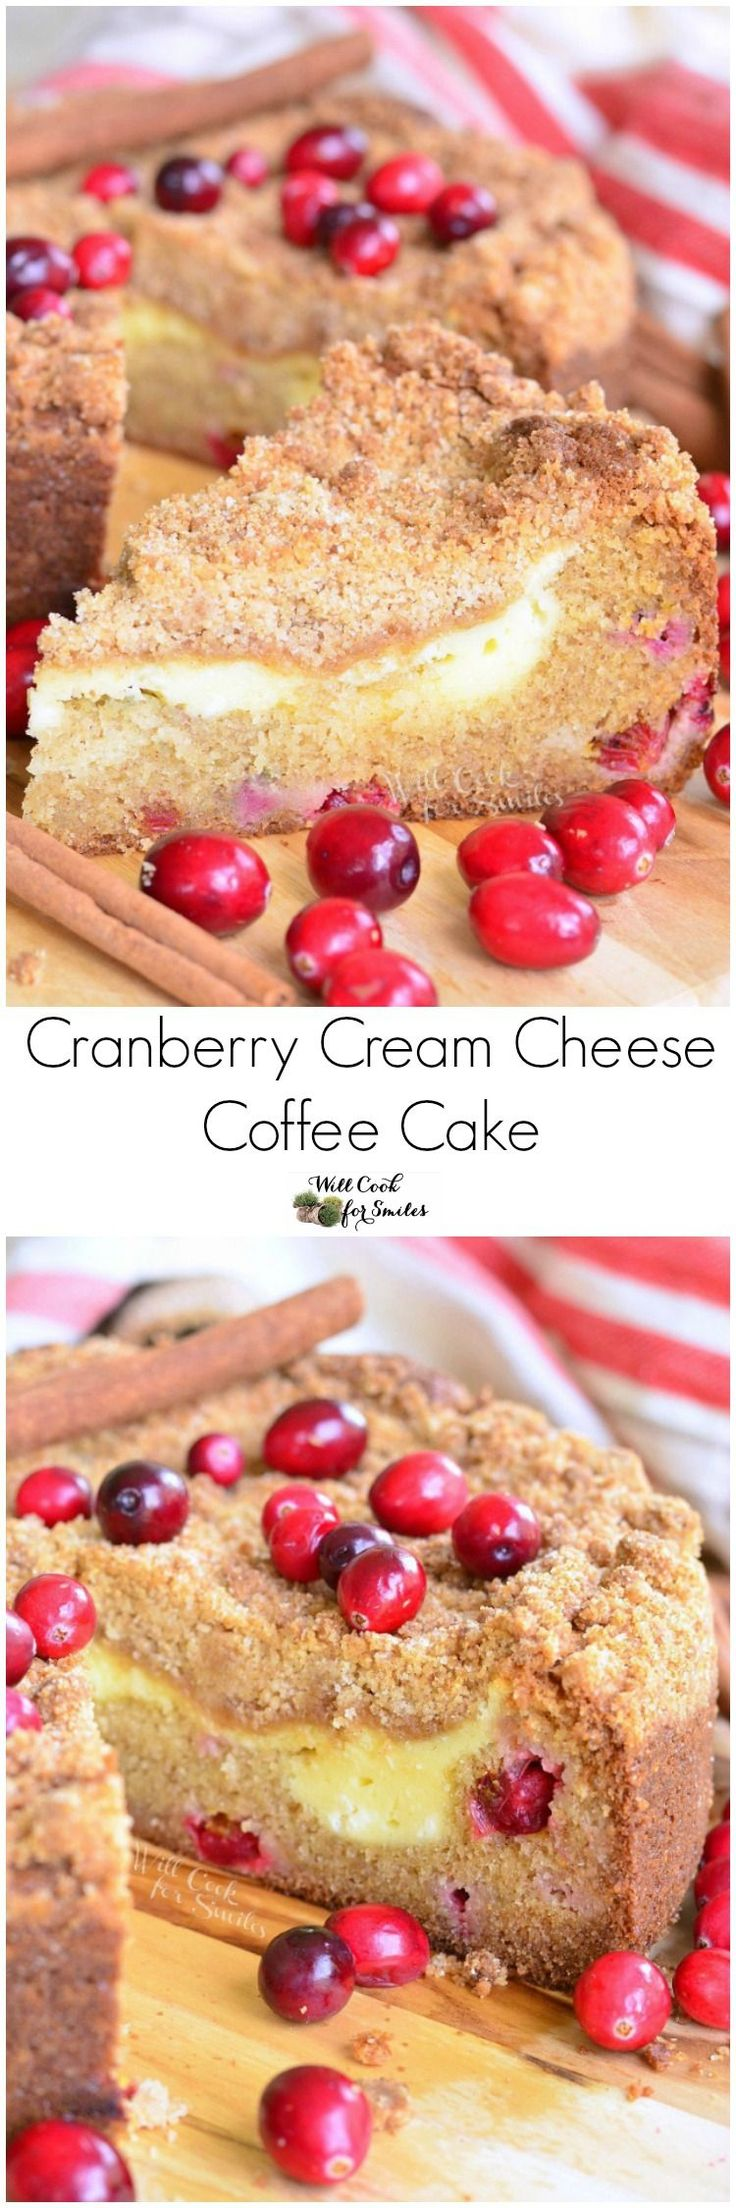 Ina Garten Cranberry Coffee Cake